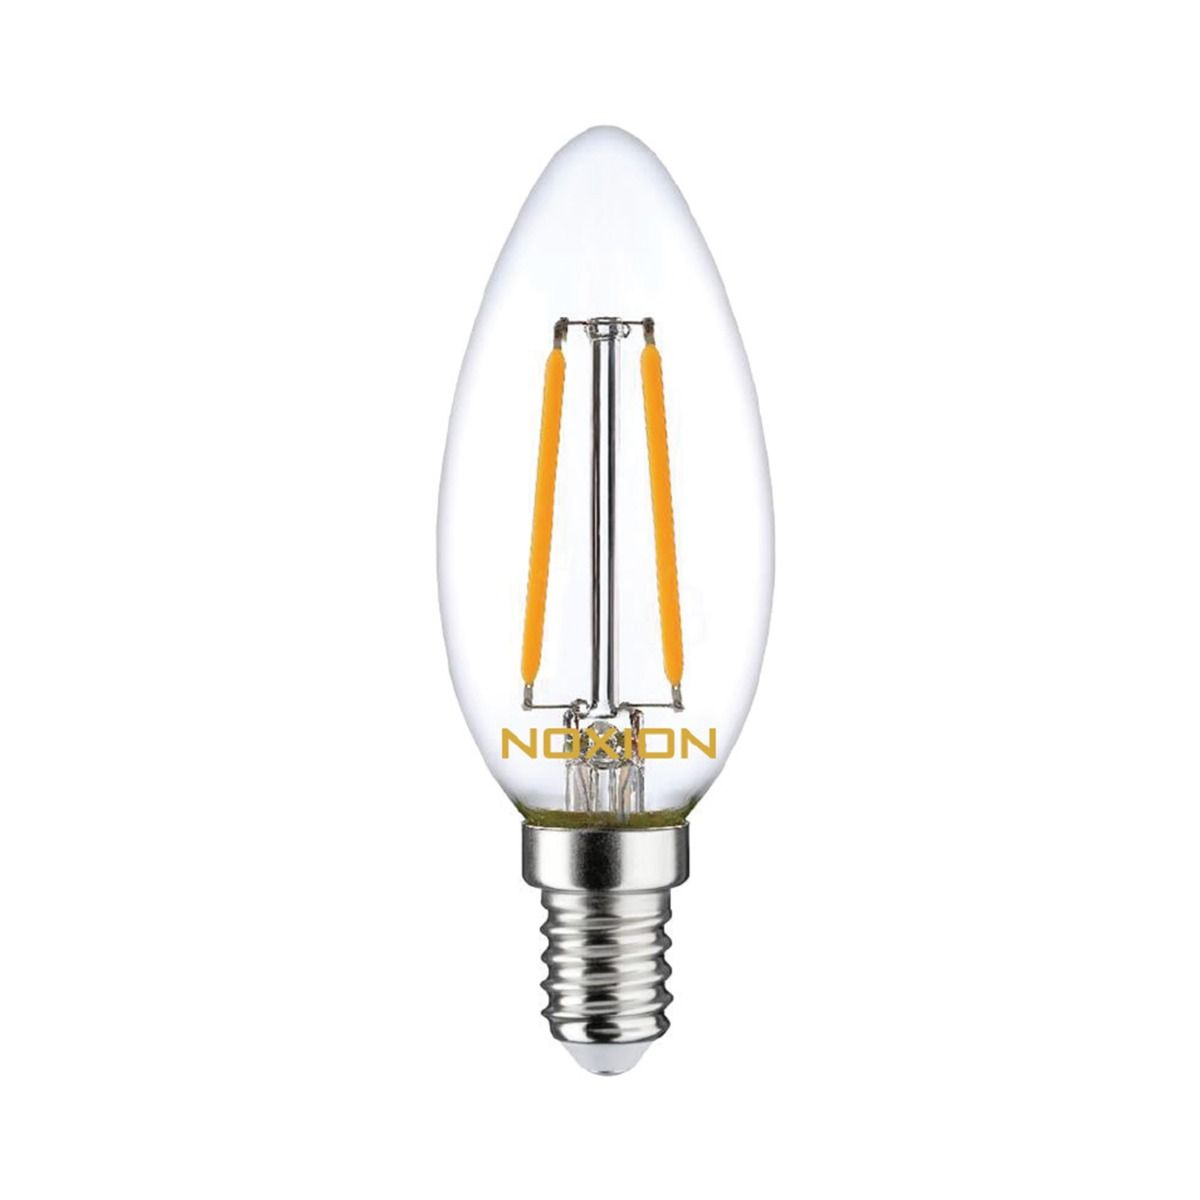 Noxion Lucent Filament LED Candle 2.5W 827 B35 E14 Clear | Dimmable - Replacer for 25W